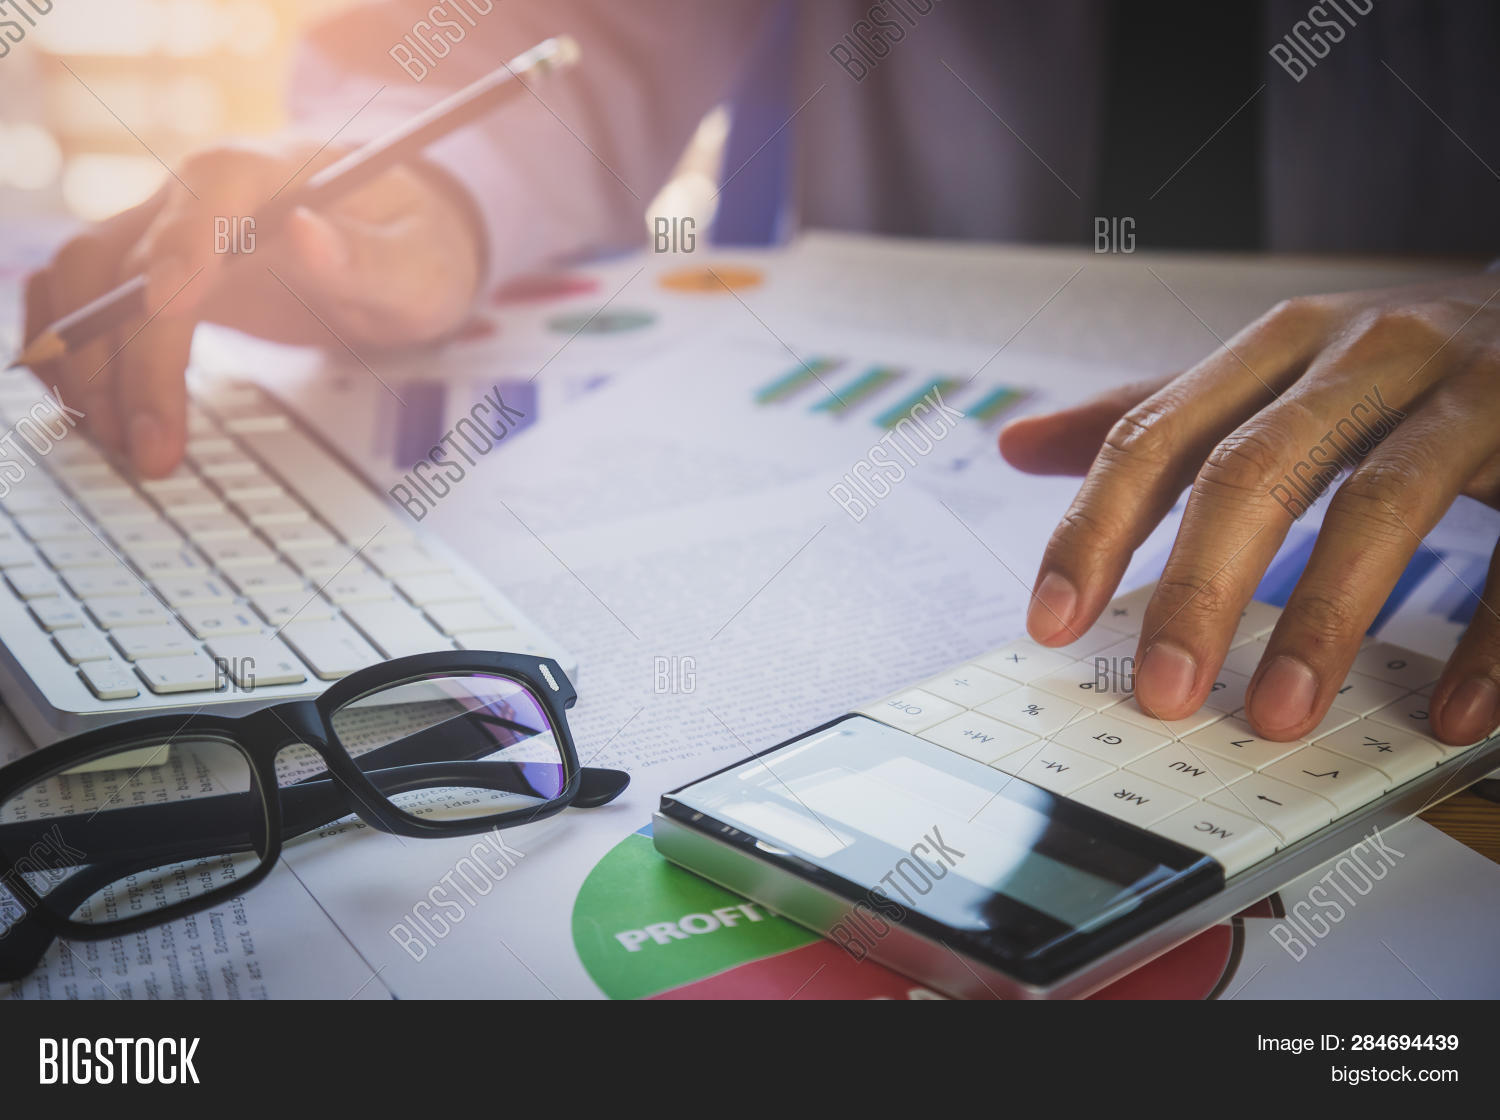 abstract,account,accounting,administrator,analysis,background,bank,boss,broker,budget,business,businessman,calculator,chart,concept,consult,corporate,cost,currency,data,desk,earning,economic,economy,exchange,expenses,finance,financial,financier,funds,graph,growth,income,indicator,information,investment,management,market,marketing,money,office,plan,planing,profit,report,selling,statistic,stock,tax,work